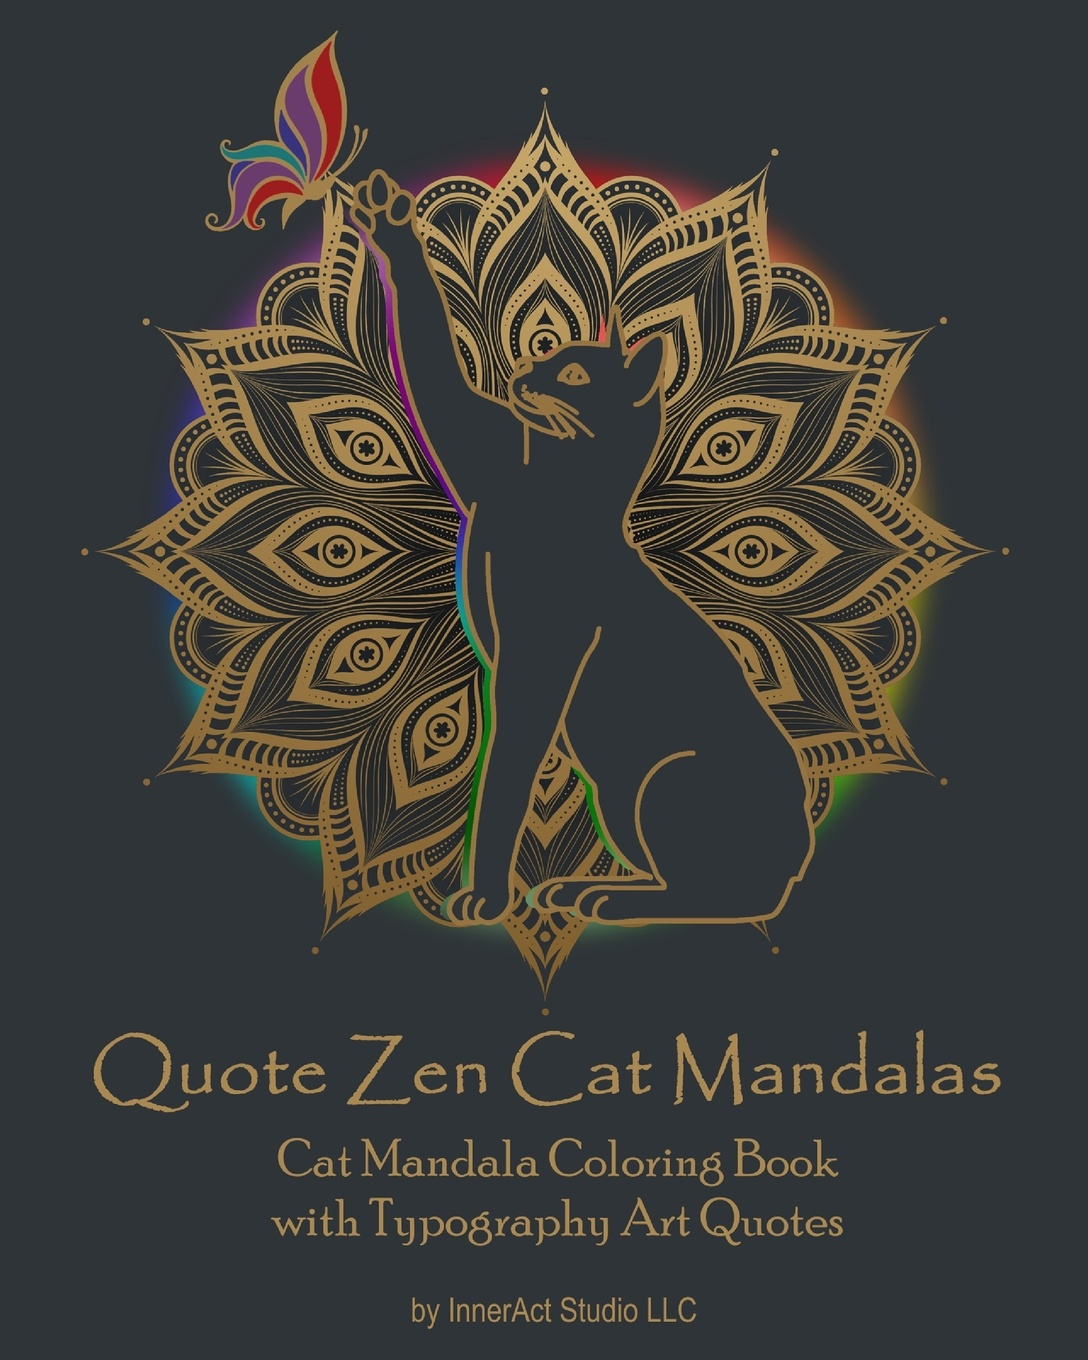 InnerAct Studio LLC Quote Zen Cat Mandalas. Cat Mandala Coloring Book with Typography Art Quotes 128 page mandalas coloring book for adult comic books relieve stress graffiti secret garden children art coloring books